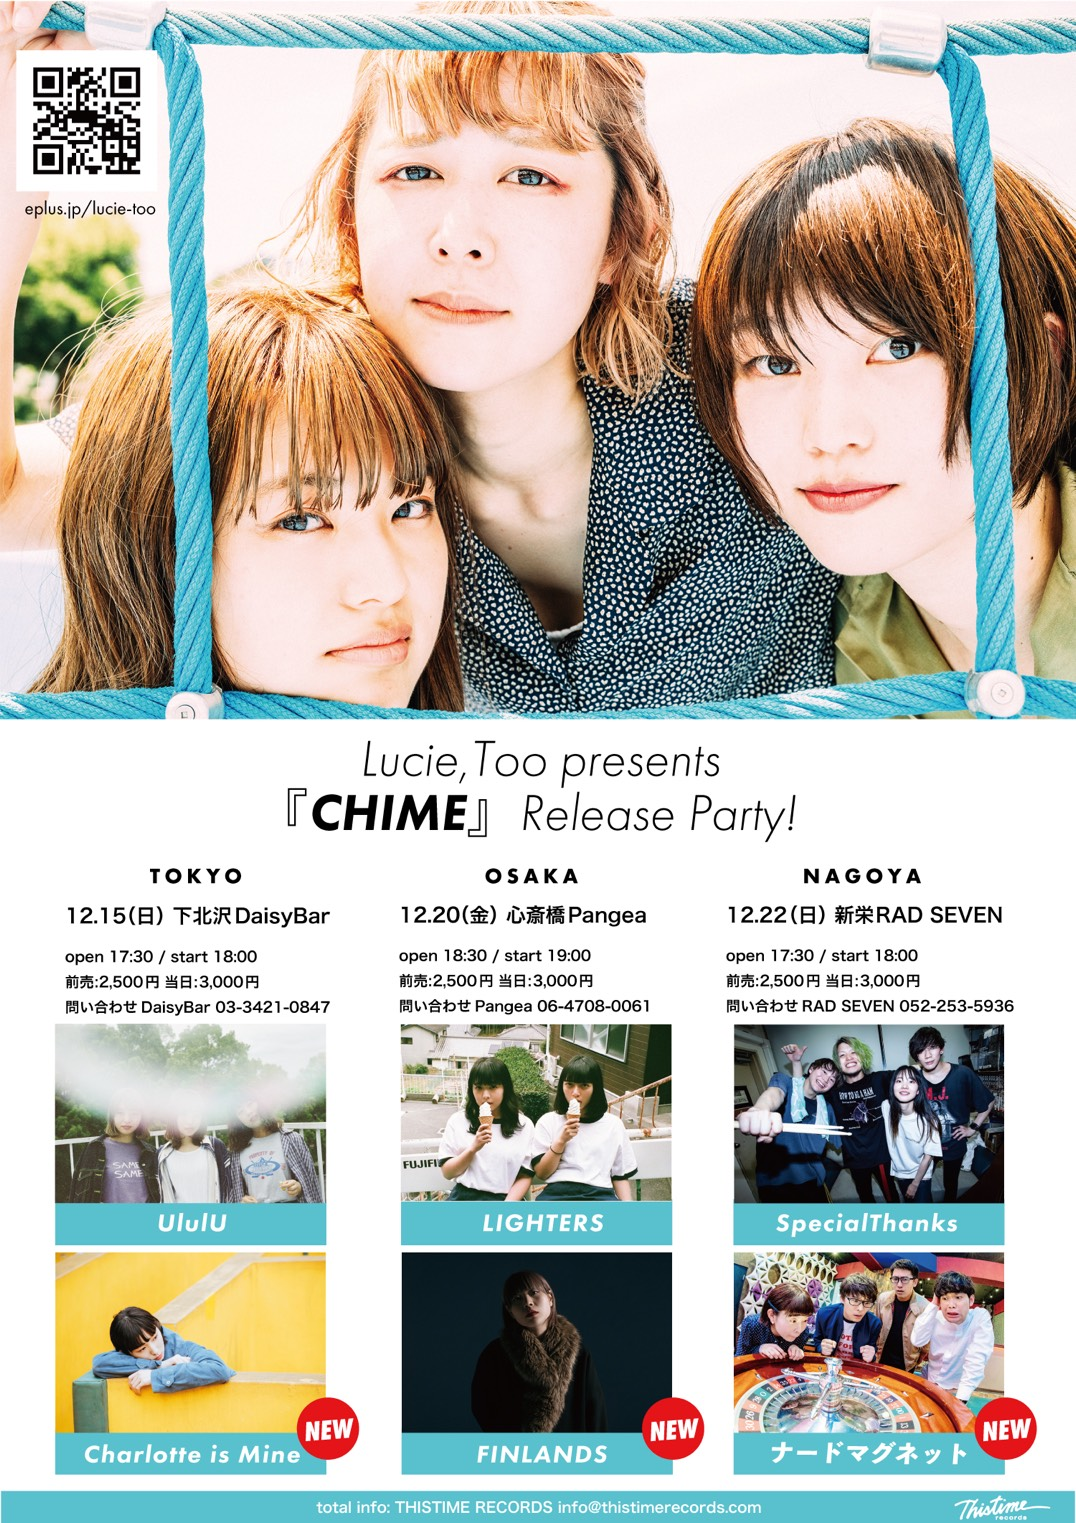 Lucie,Too presents 『CHIME』Release Party!